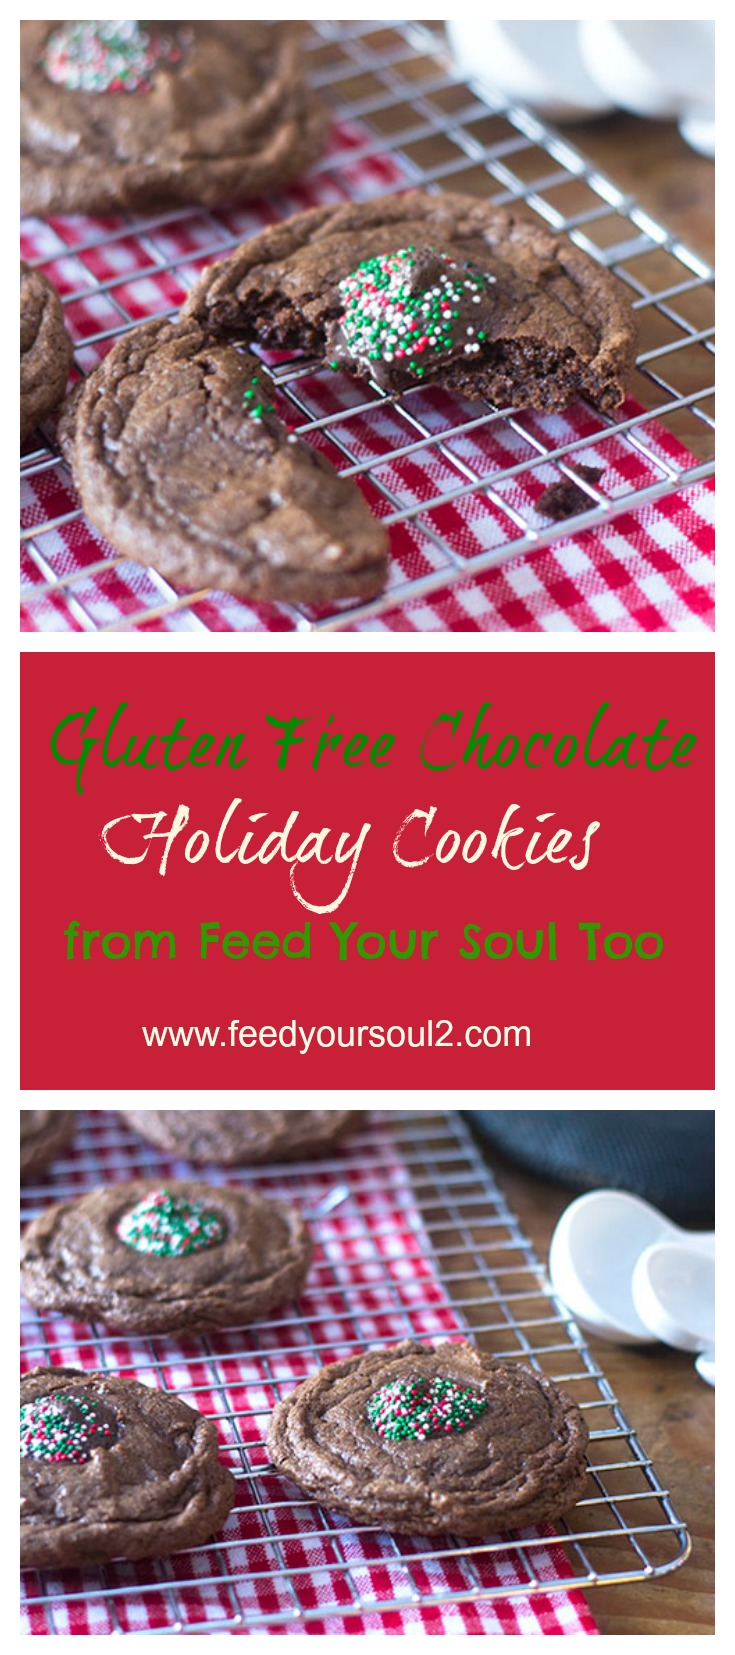 Gluten Free Chocolate Holiday Cookies #dessert #glutenfree #cookies | feedyoursoul2.com